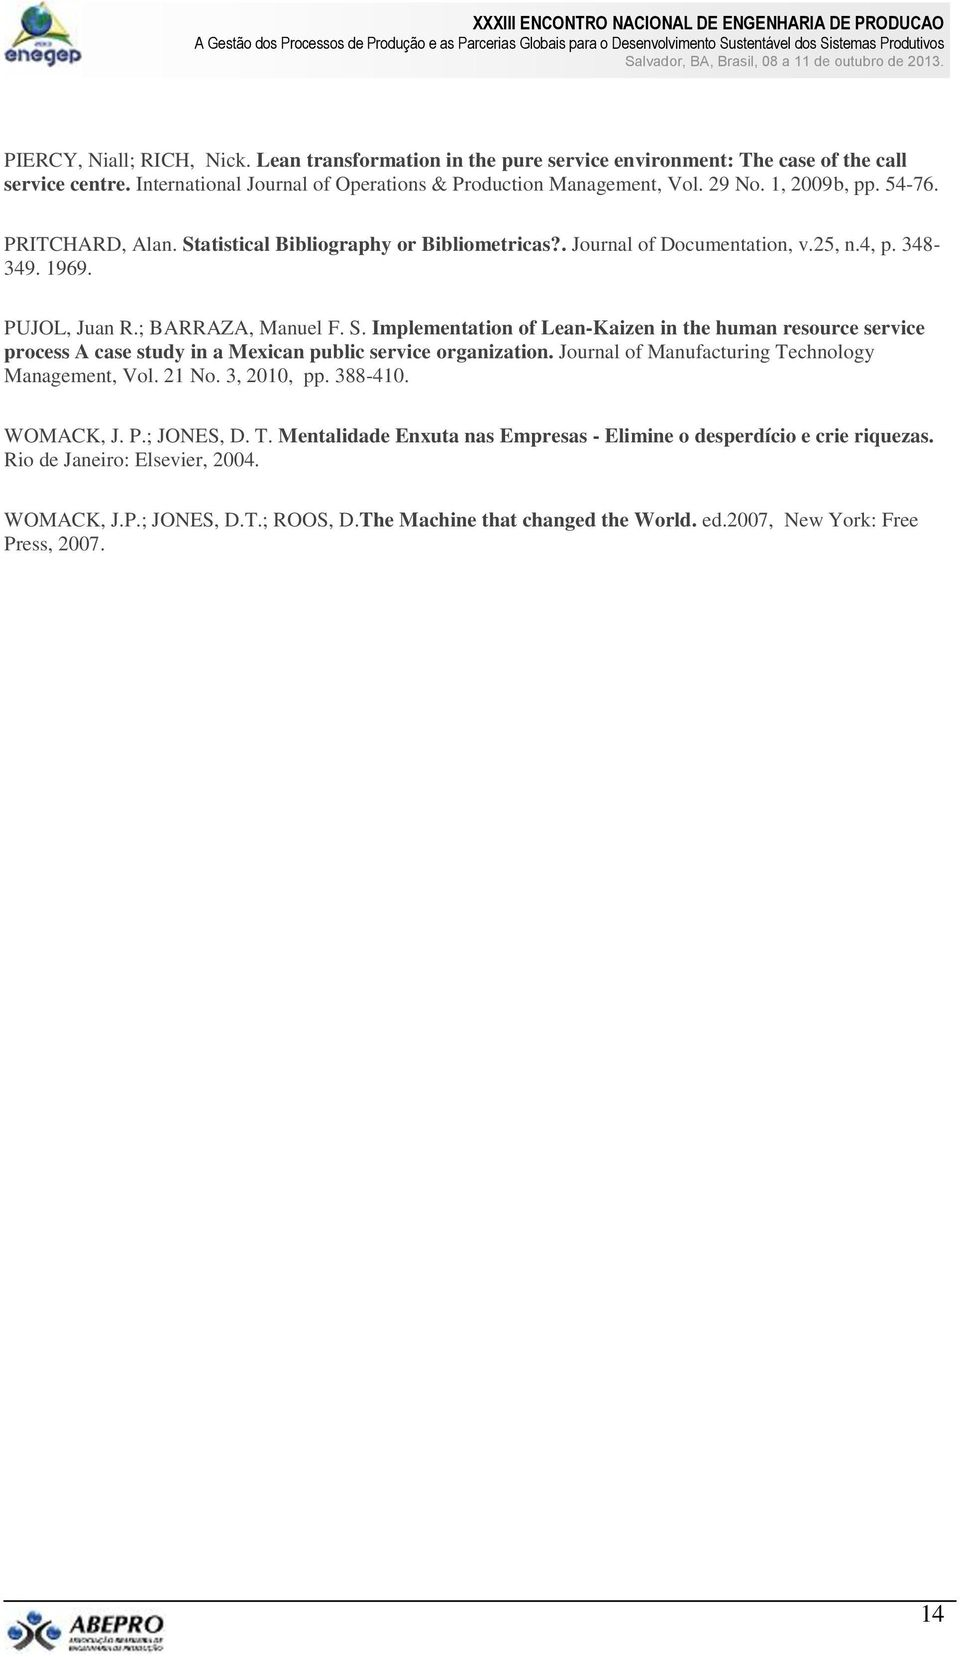 Journal of Manufacturing Technology Management, Vol. 21 No. 3, 2010, pp. 388-410. WOMACK, J. P.; JONES, D. T. Mentalidade Enxuta nas Empresas - Elimine o desperdício e crie riquezas.